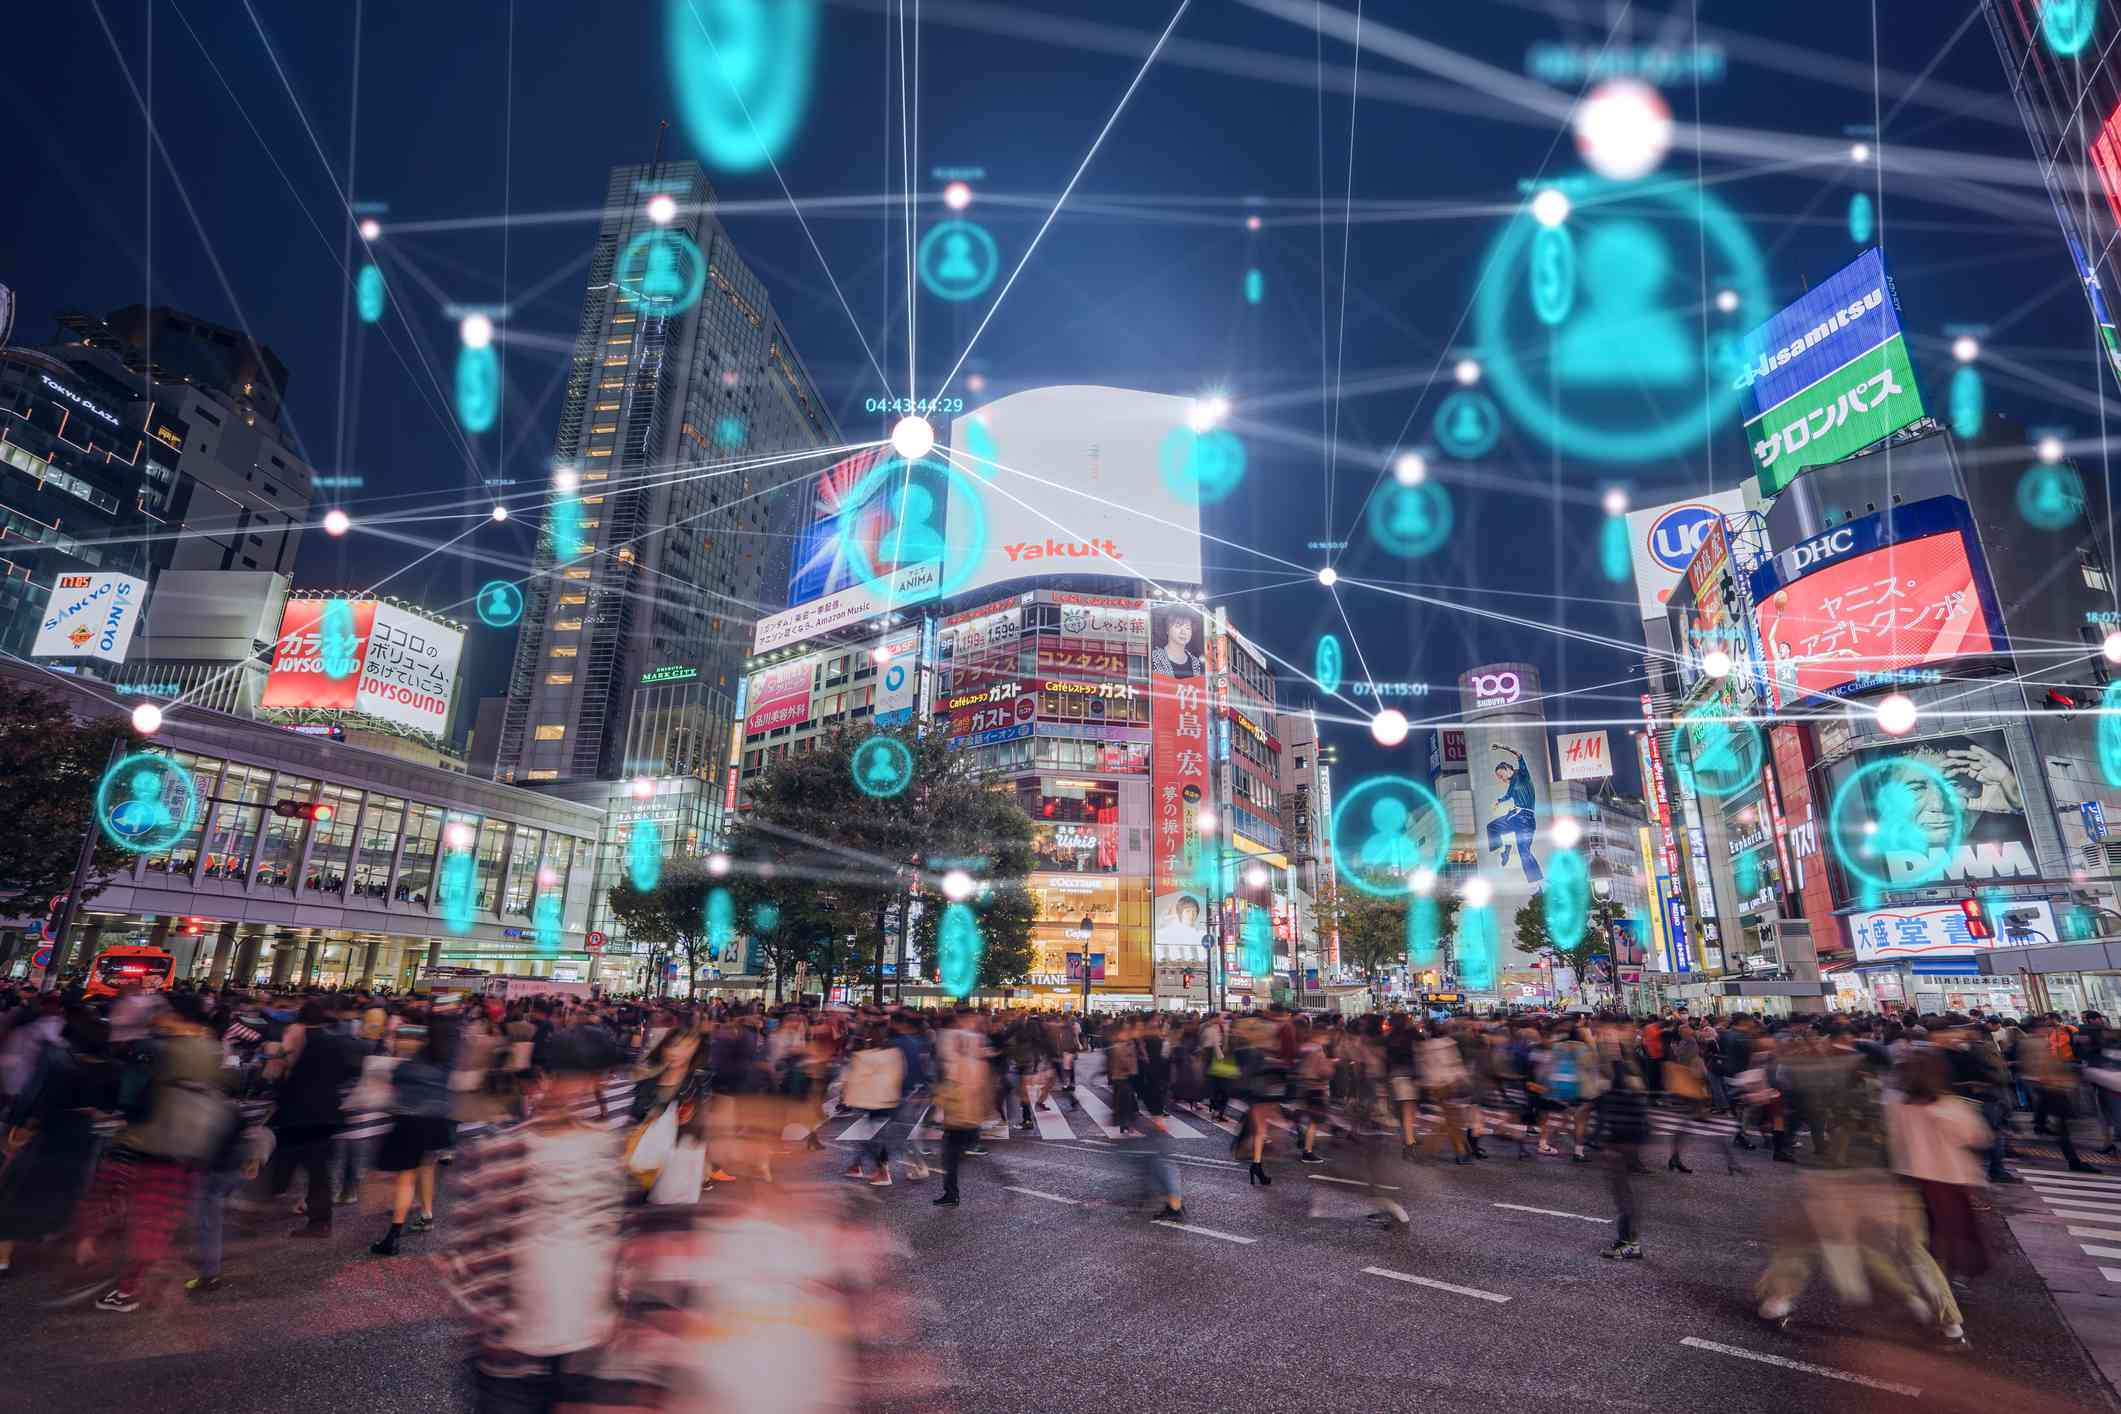 Global communication icon with network connections line above crowded people walking